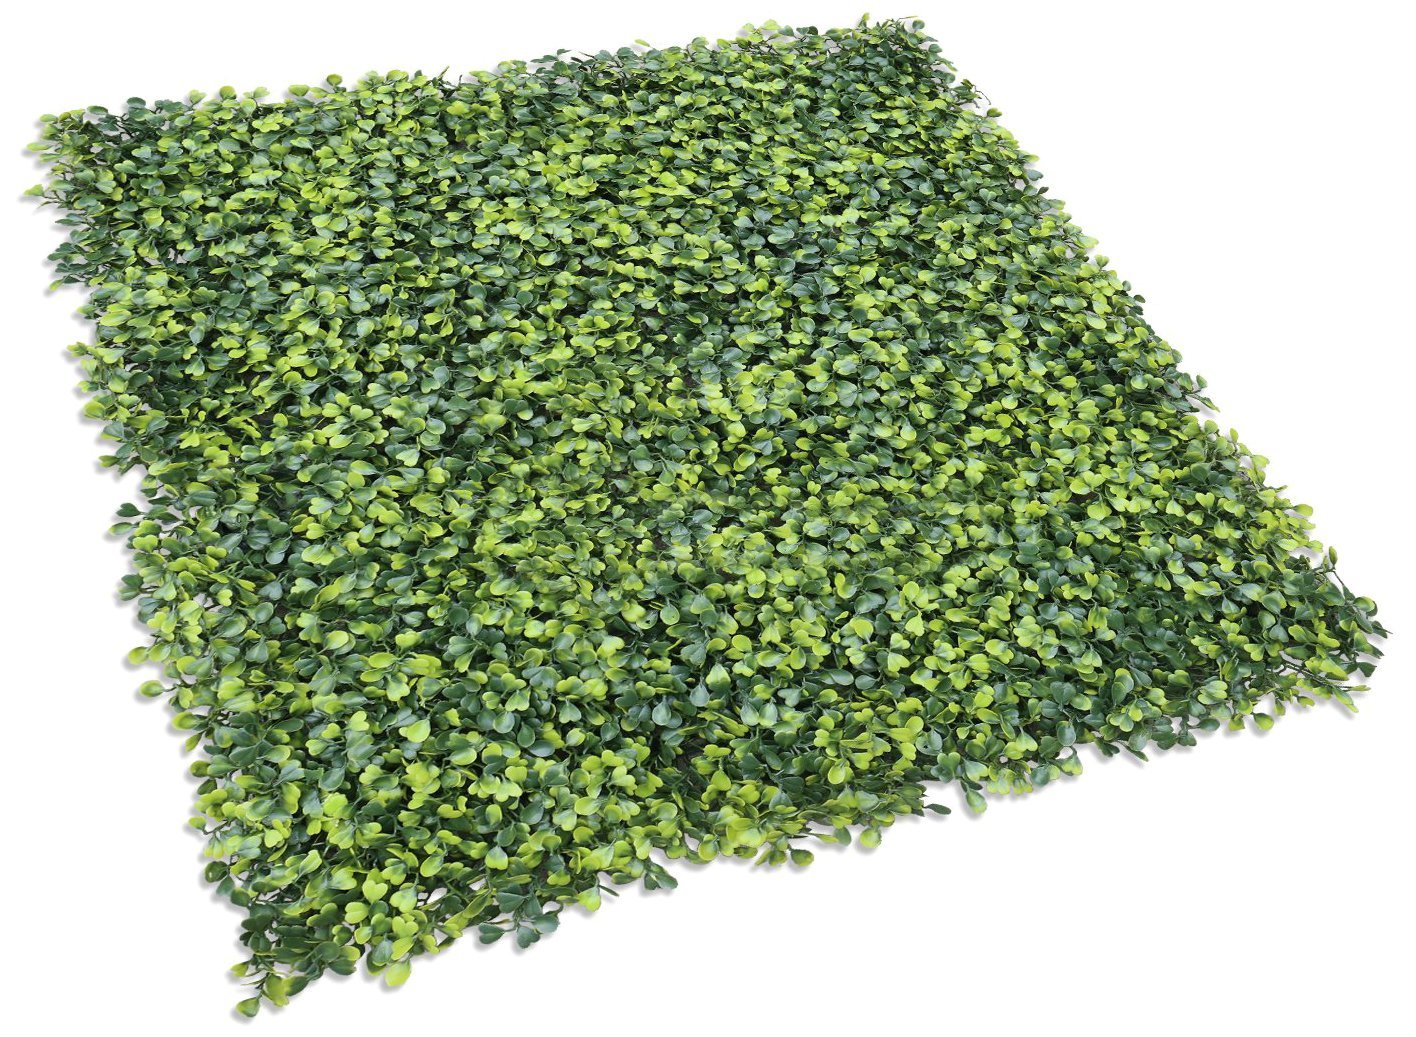 Sunshades Depot Sunshades Depot Artificial Boxwood Milan Leaf Grass Fence Privacy Screen Evergreen Hedge Panels Fake Plant Wall 20''X20'' Inch (30pcs)